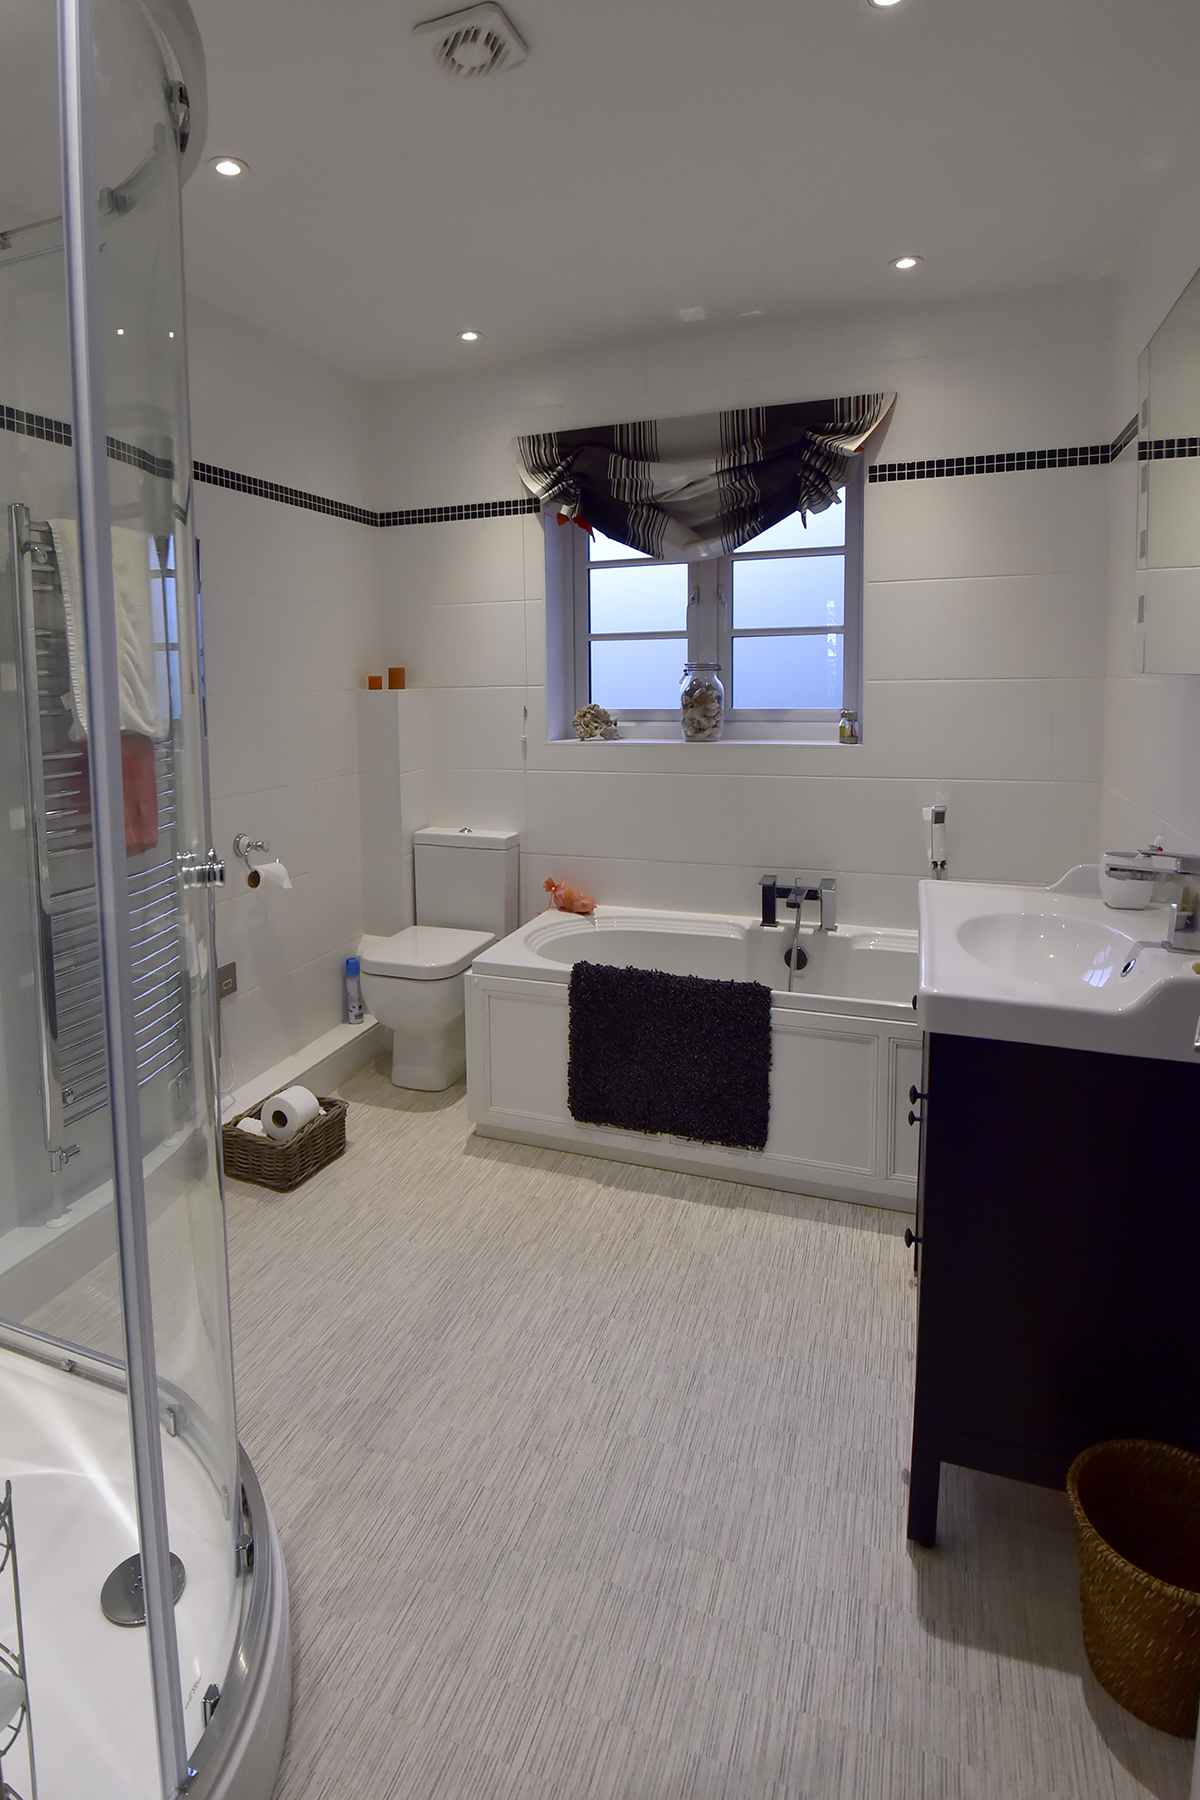 Bathroom Interior Design by Sarah Maidment Interiors, Berkhamsted, St. Albans, Hertfordshire